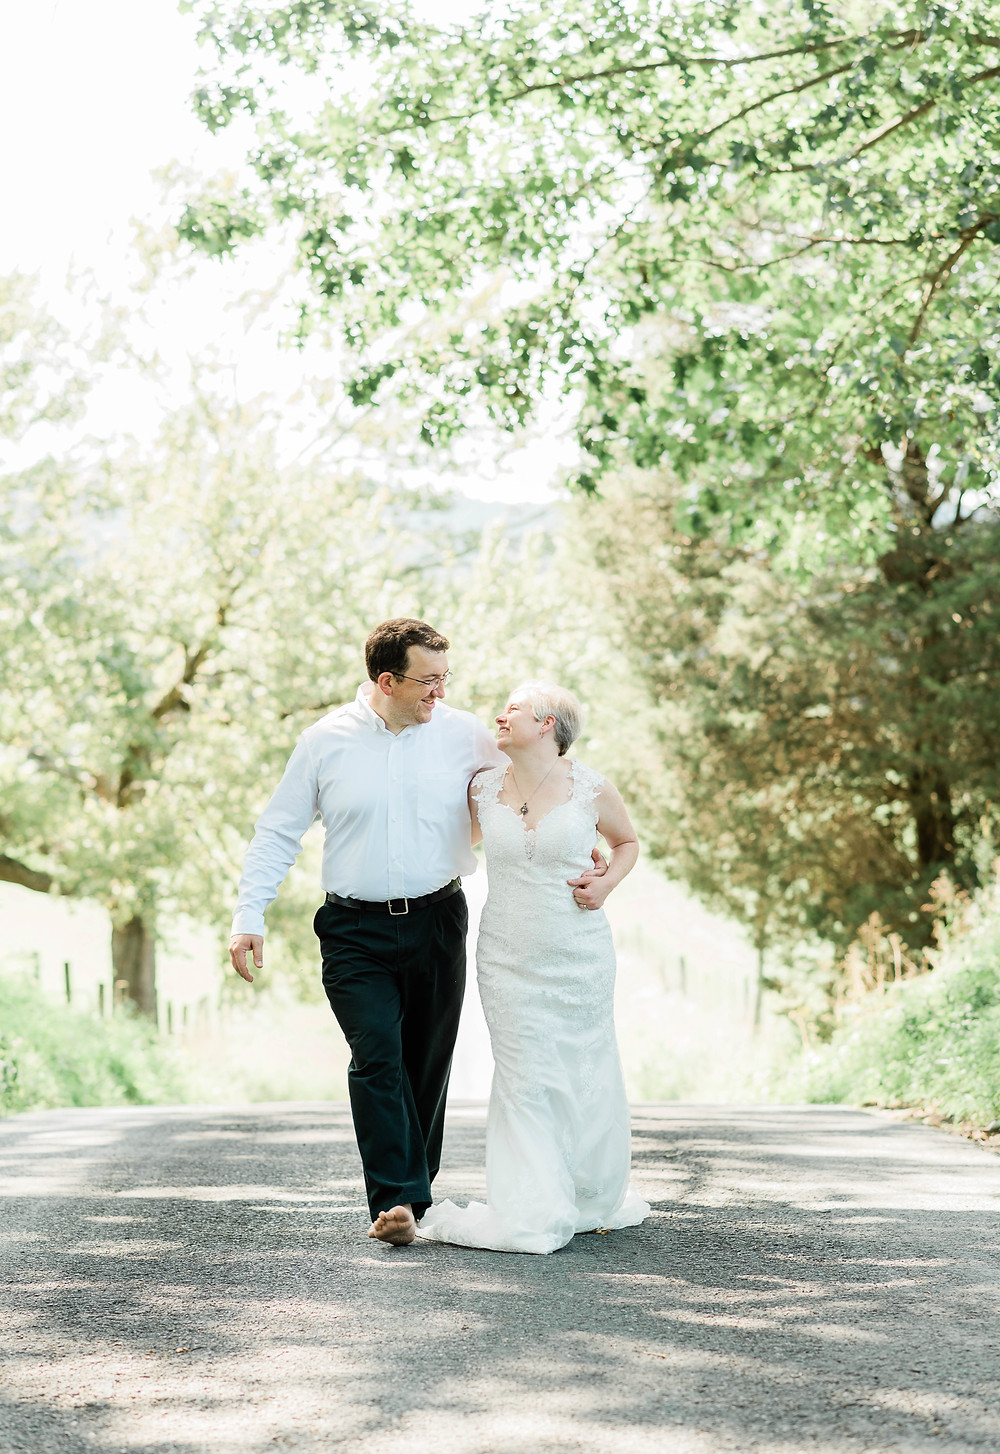 Walk with me | Bride and groom portraits